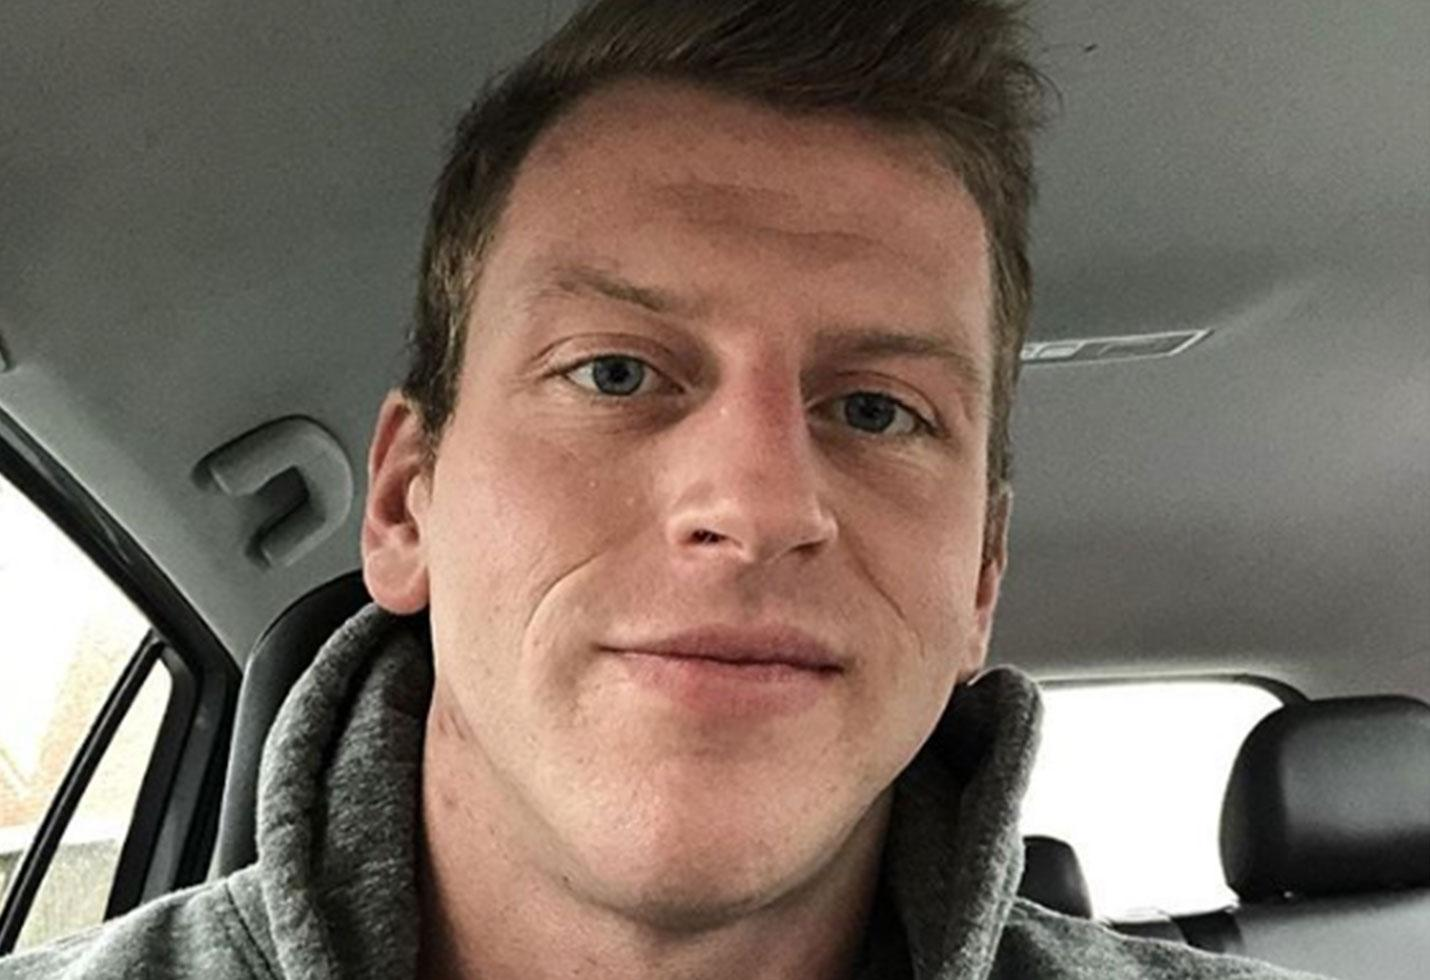 tinder attacker erich stelzer paranoid delusional before stabbing